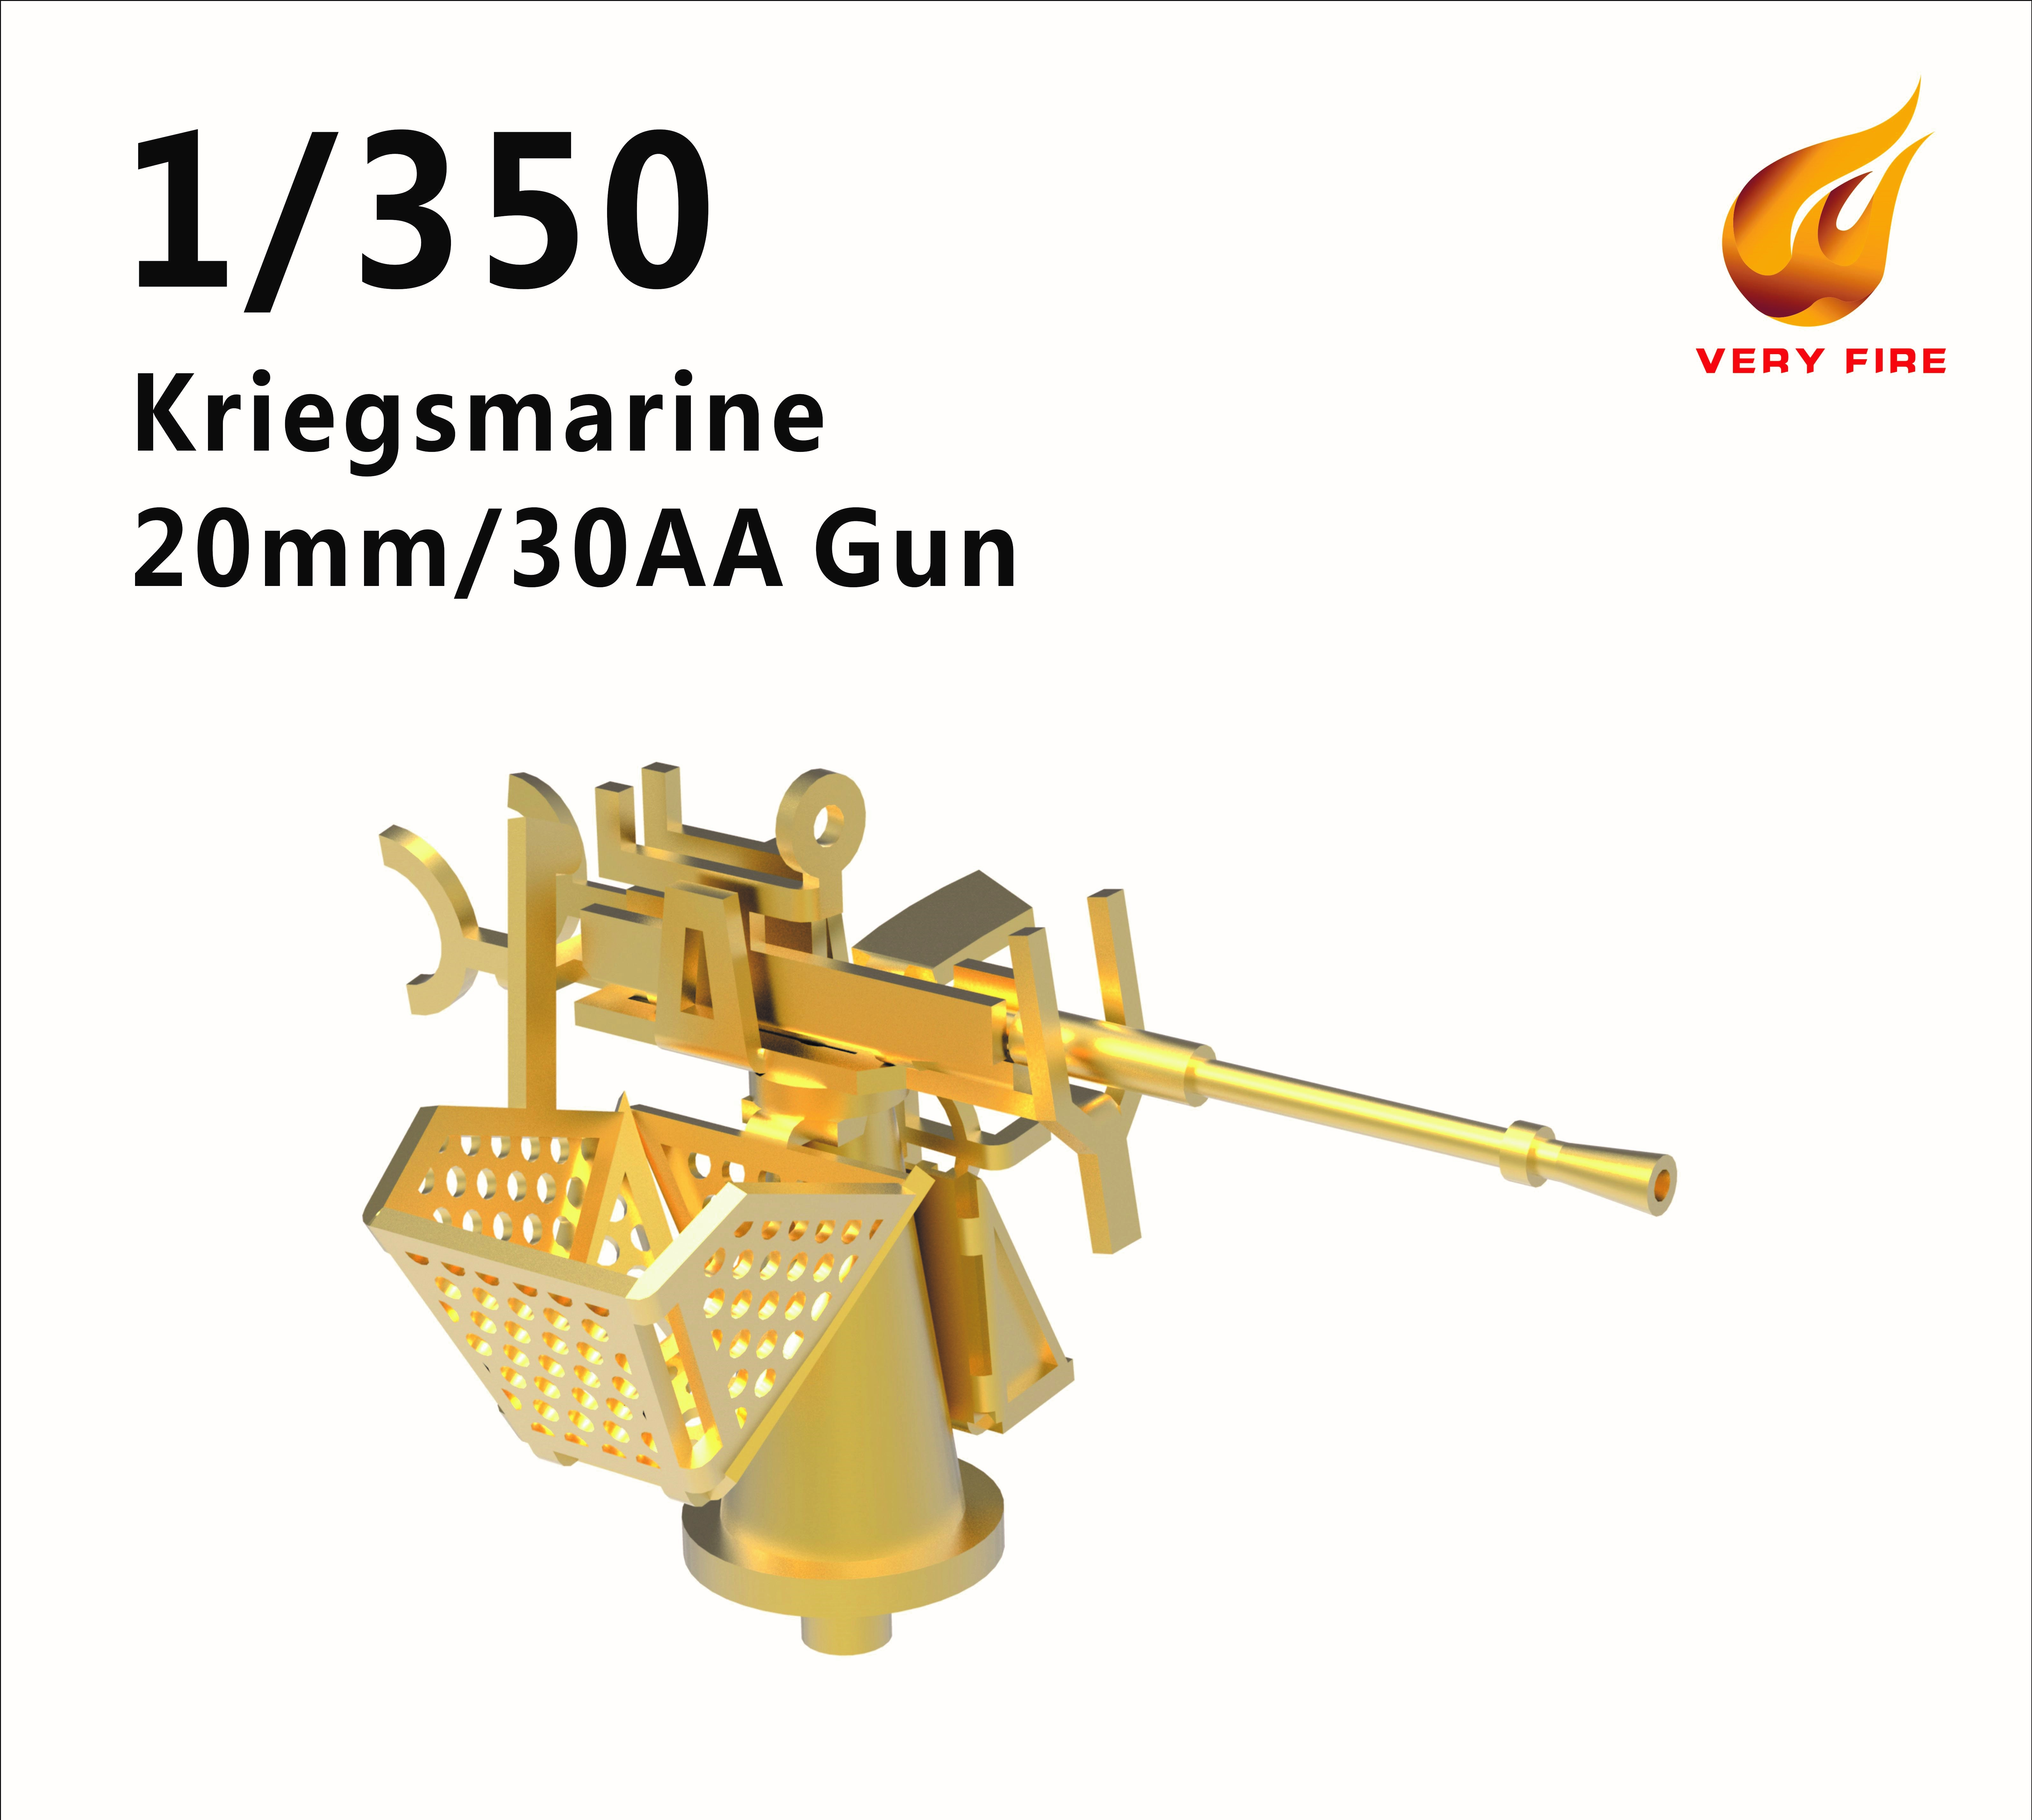 Very Fire 1/350 DKM Kriegsmarine 20mm/30 AA Guns (16 Sets)